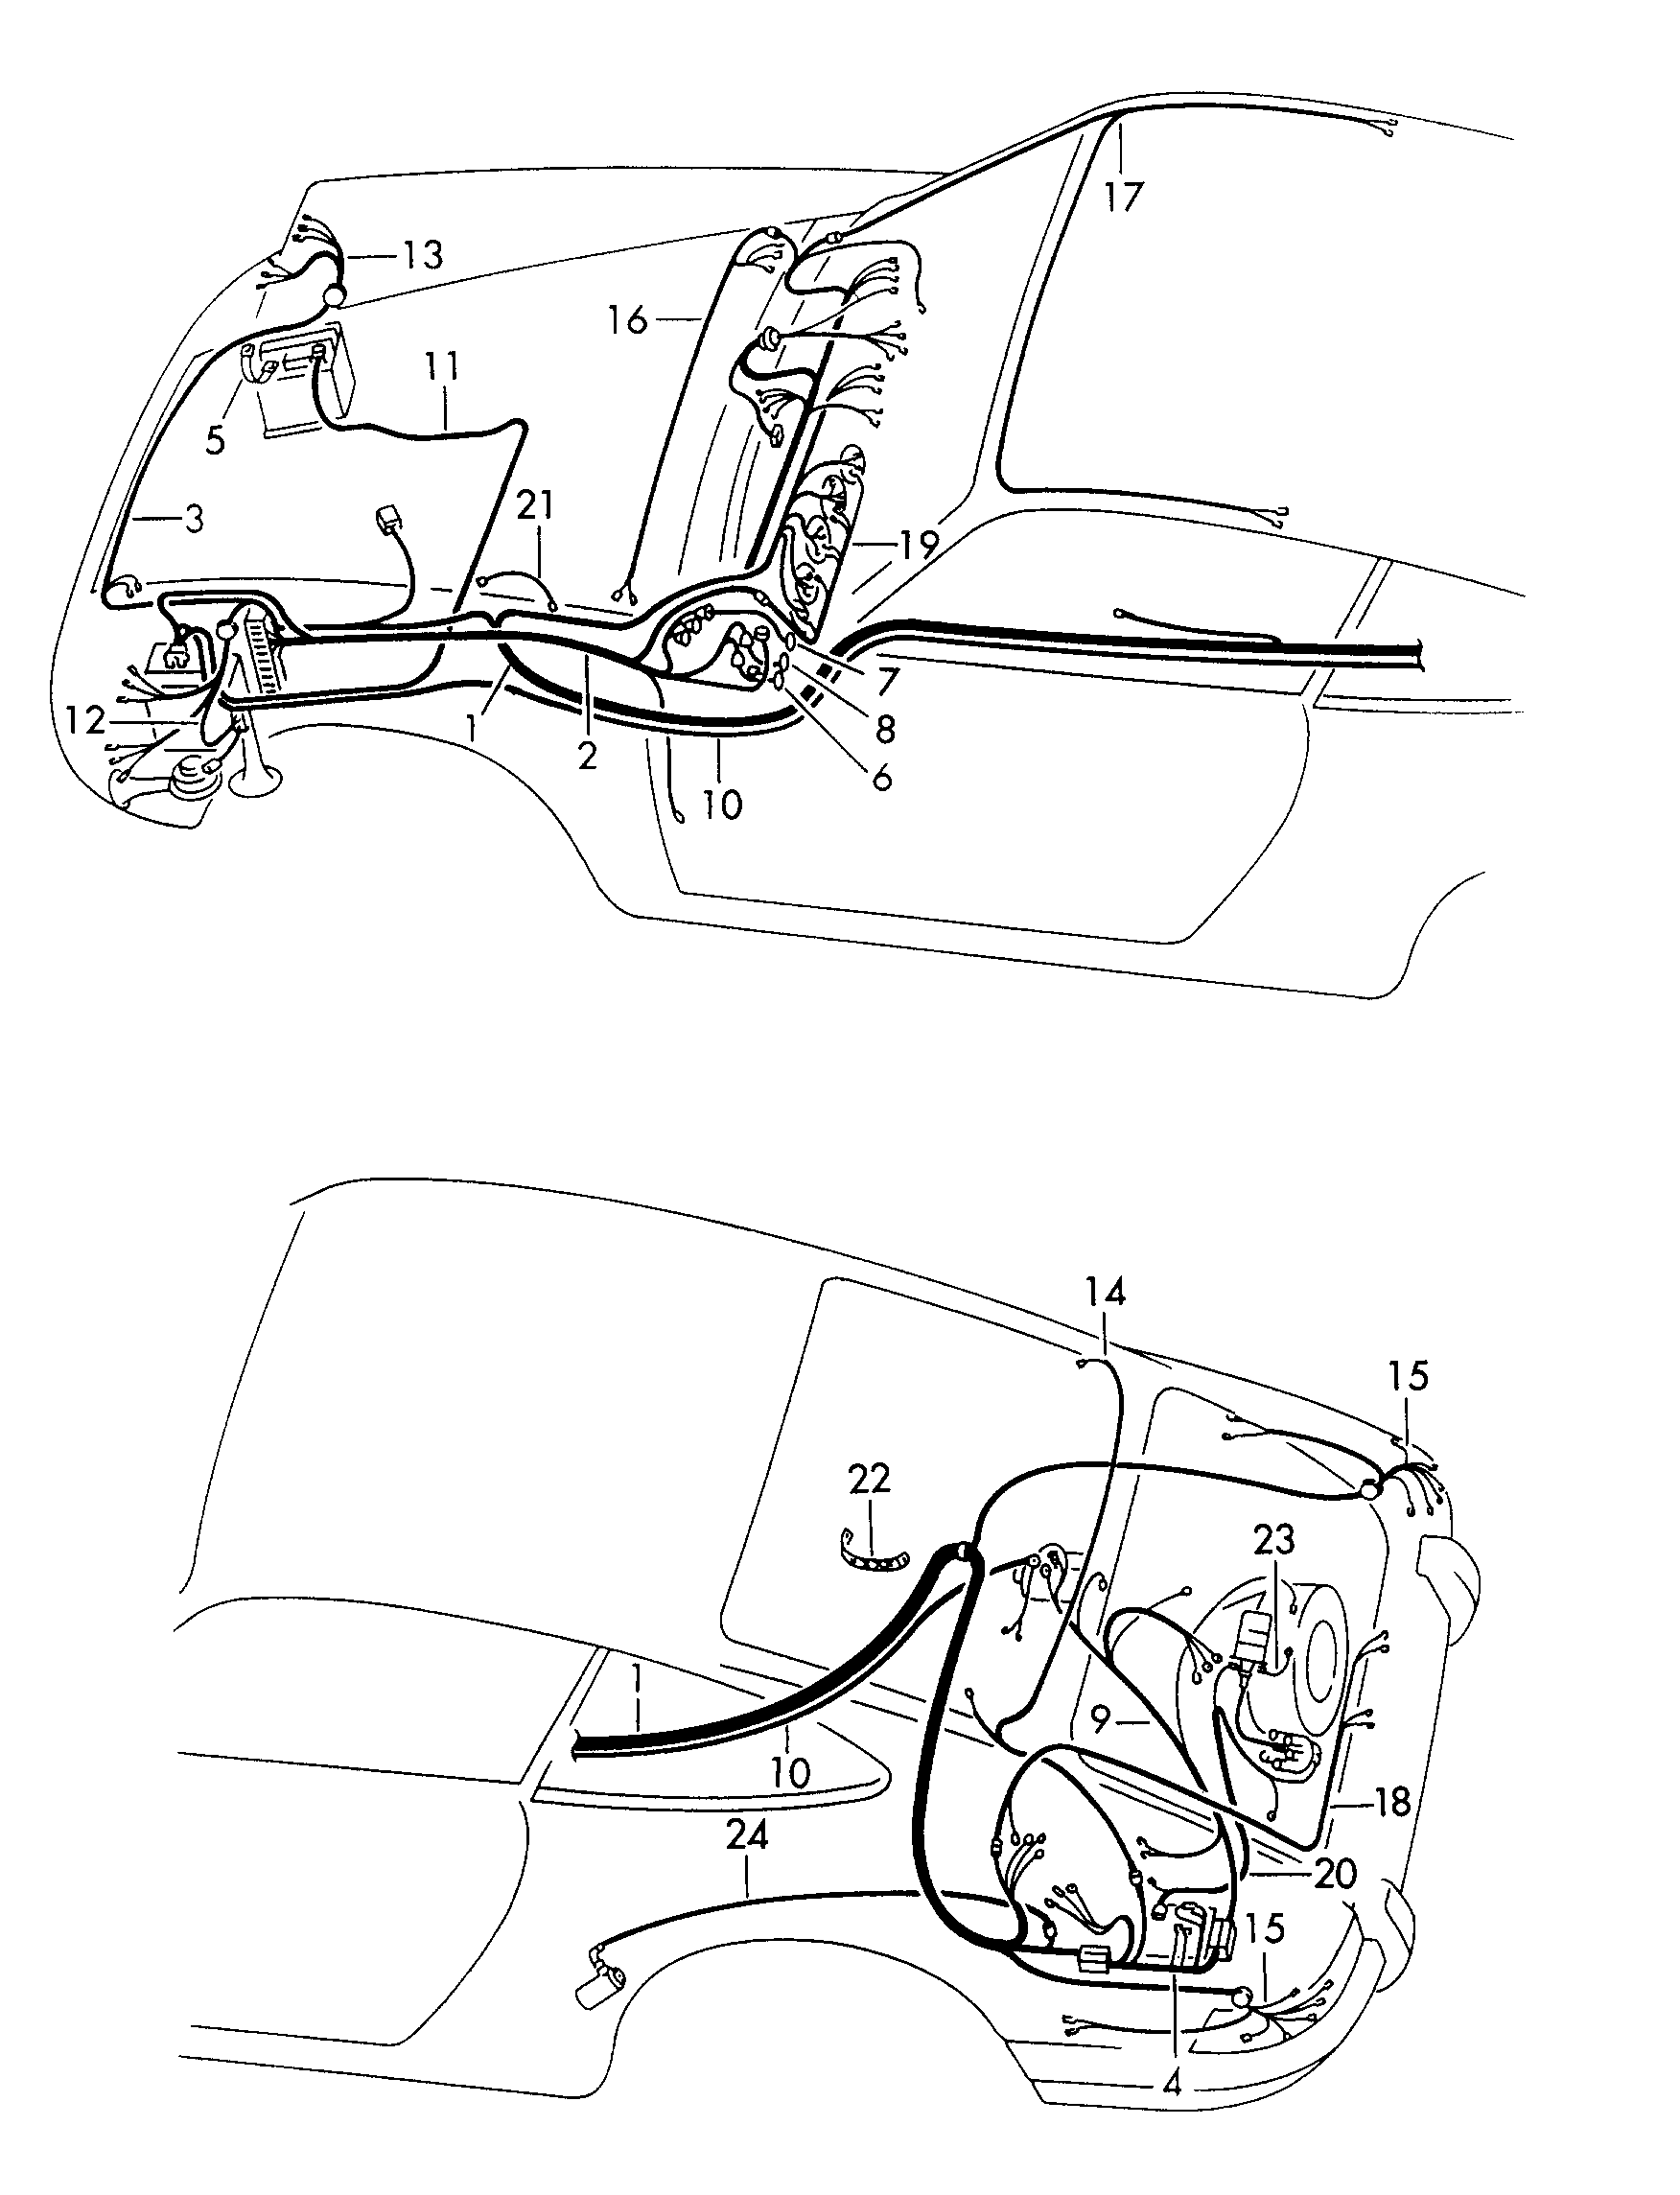 Wiring Diagram For Porsche 911